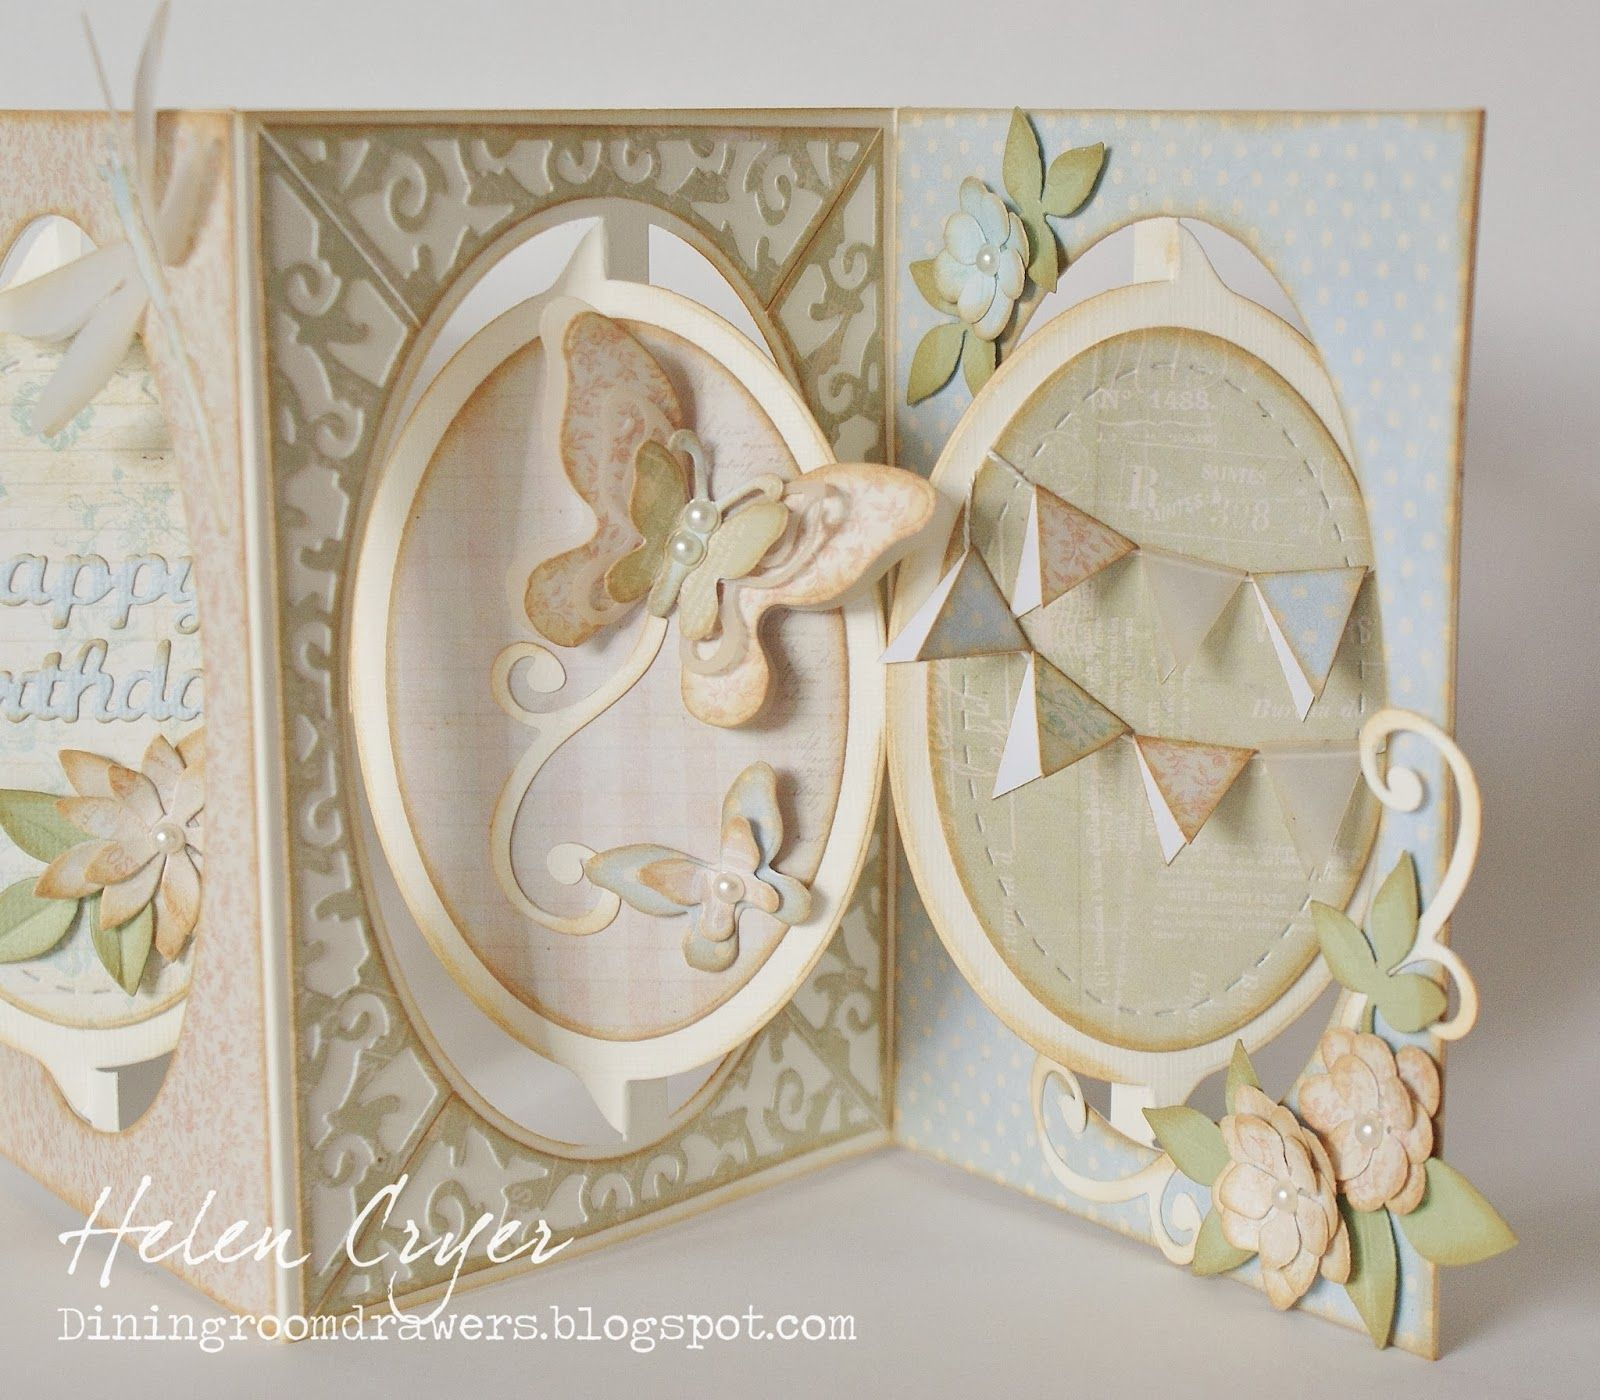 The Dining Room Drawers Oval Accordion Album Soft Pastel Birthday